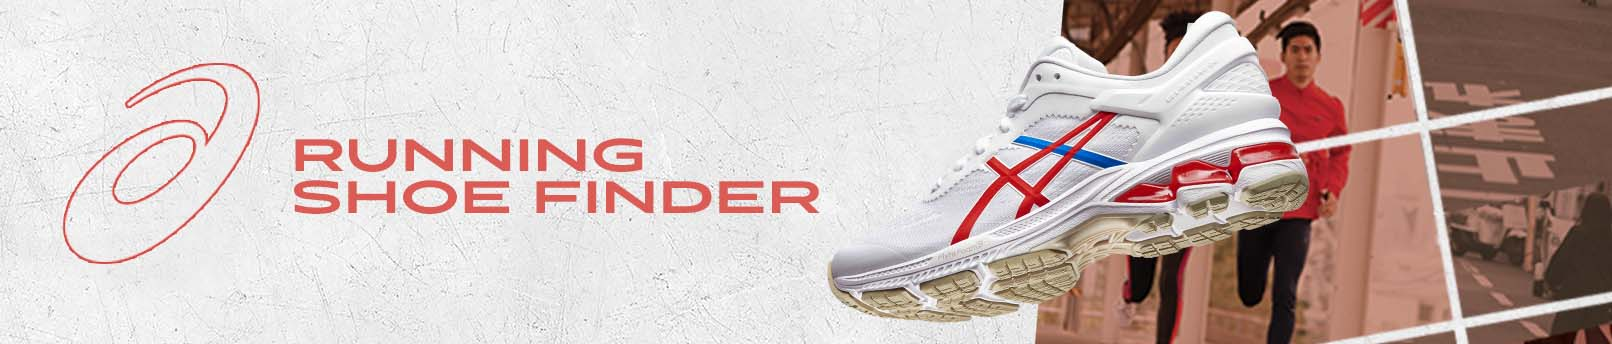 ASICS SHOE FINDER